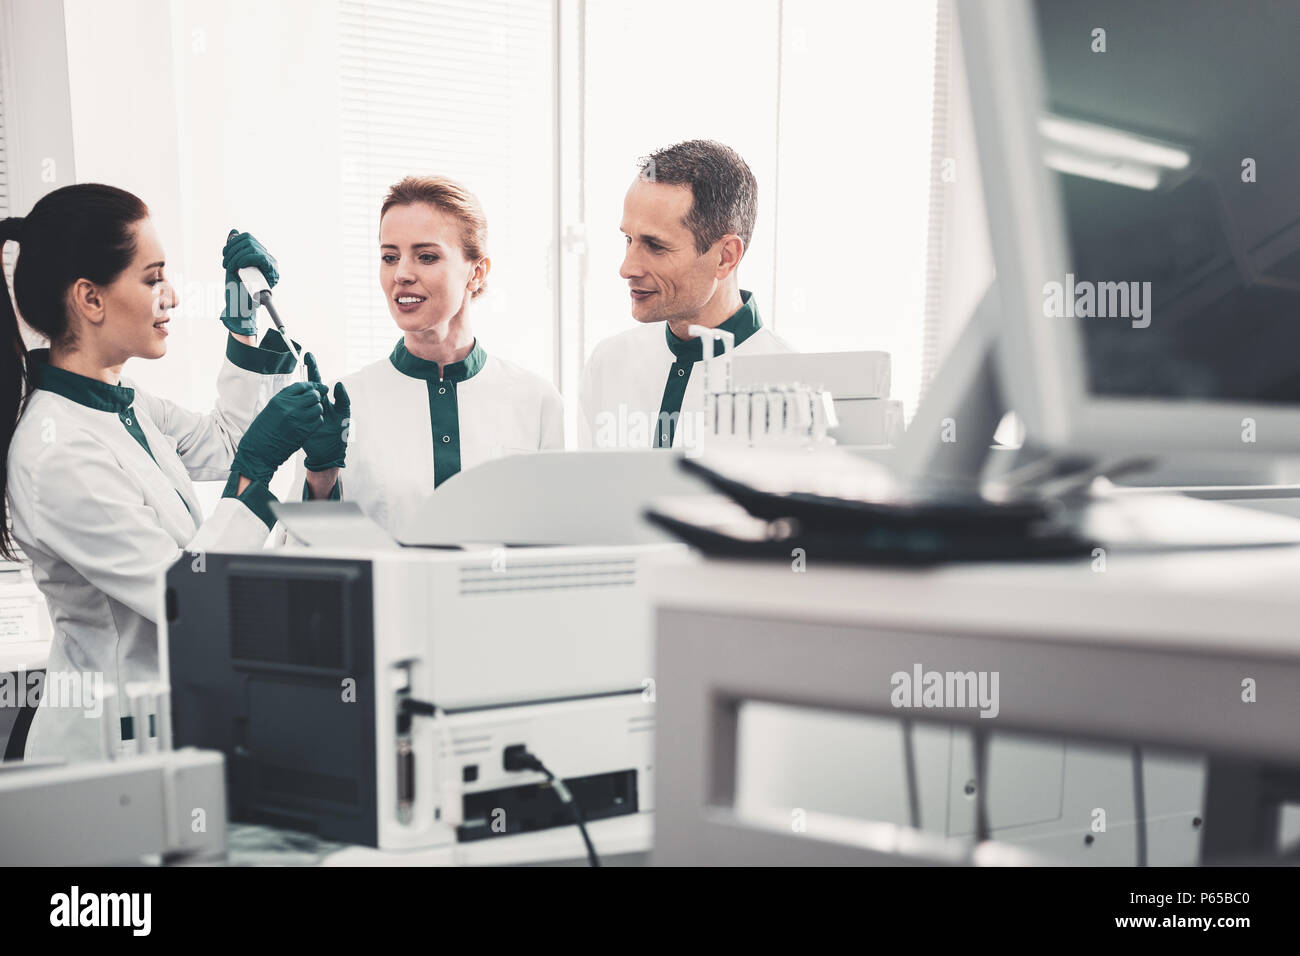 Professional doctors teaching their assistant - Stock Image